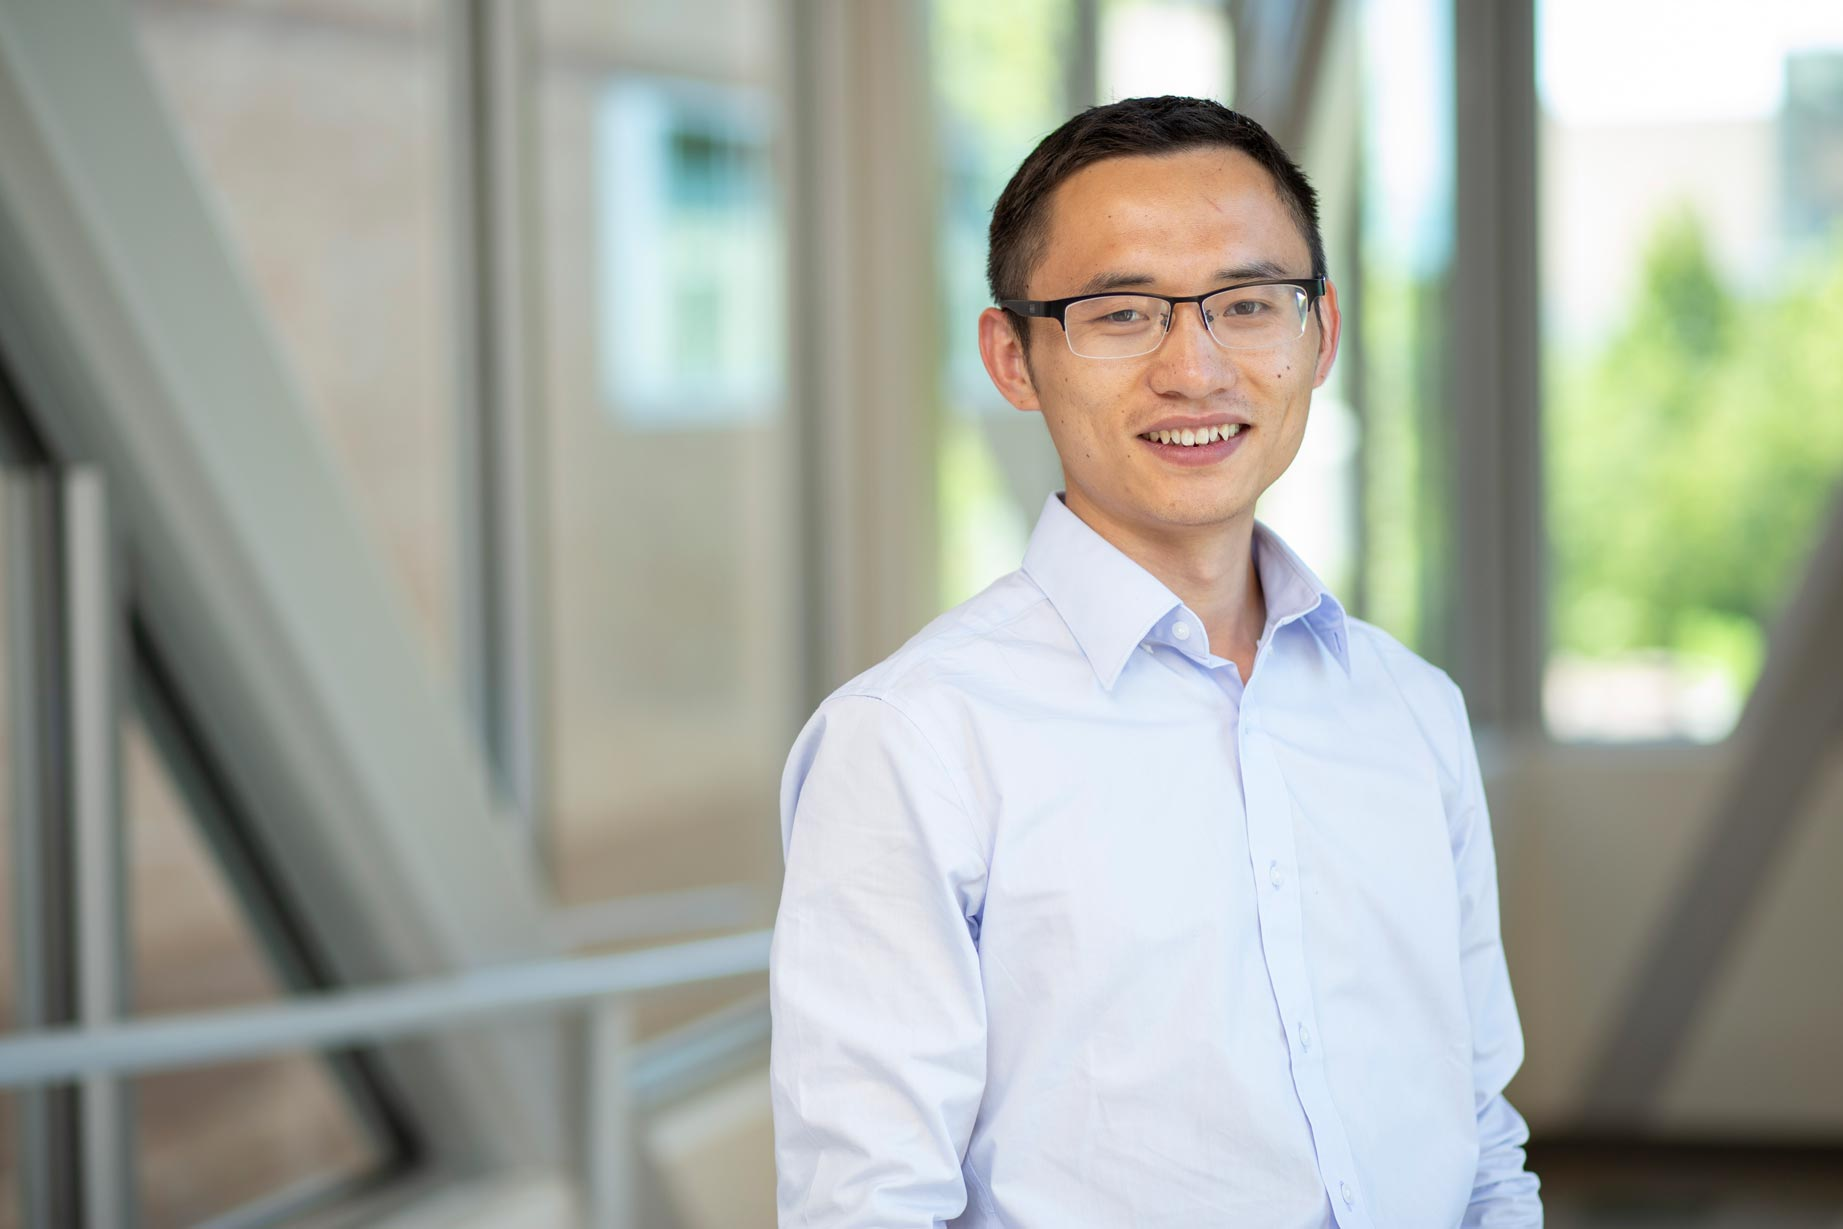 ECE assistant professor Hongjie Wang received a $300,000 grant from the Department of Energy to develop new security standards for solar-powered, community-scale utility grids.